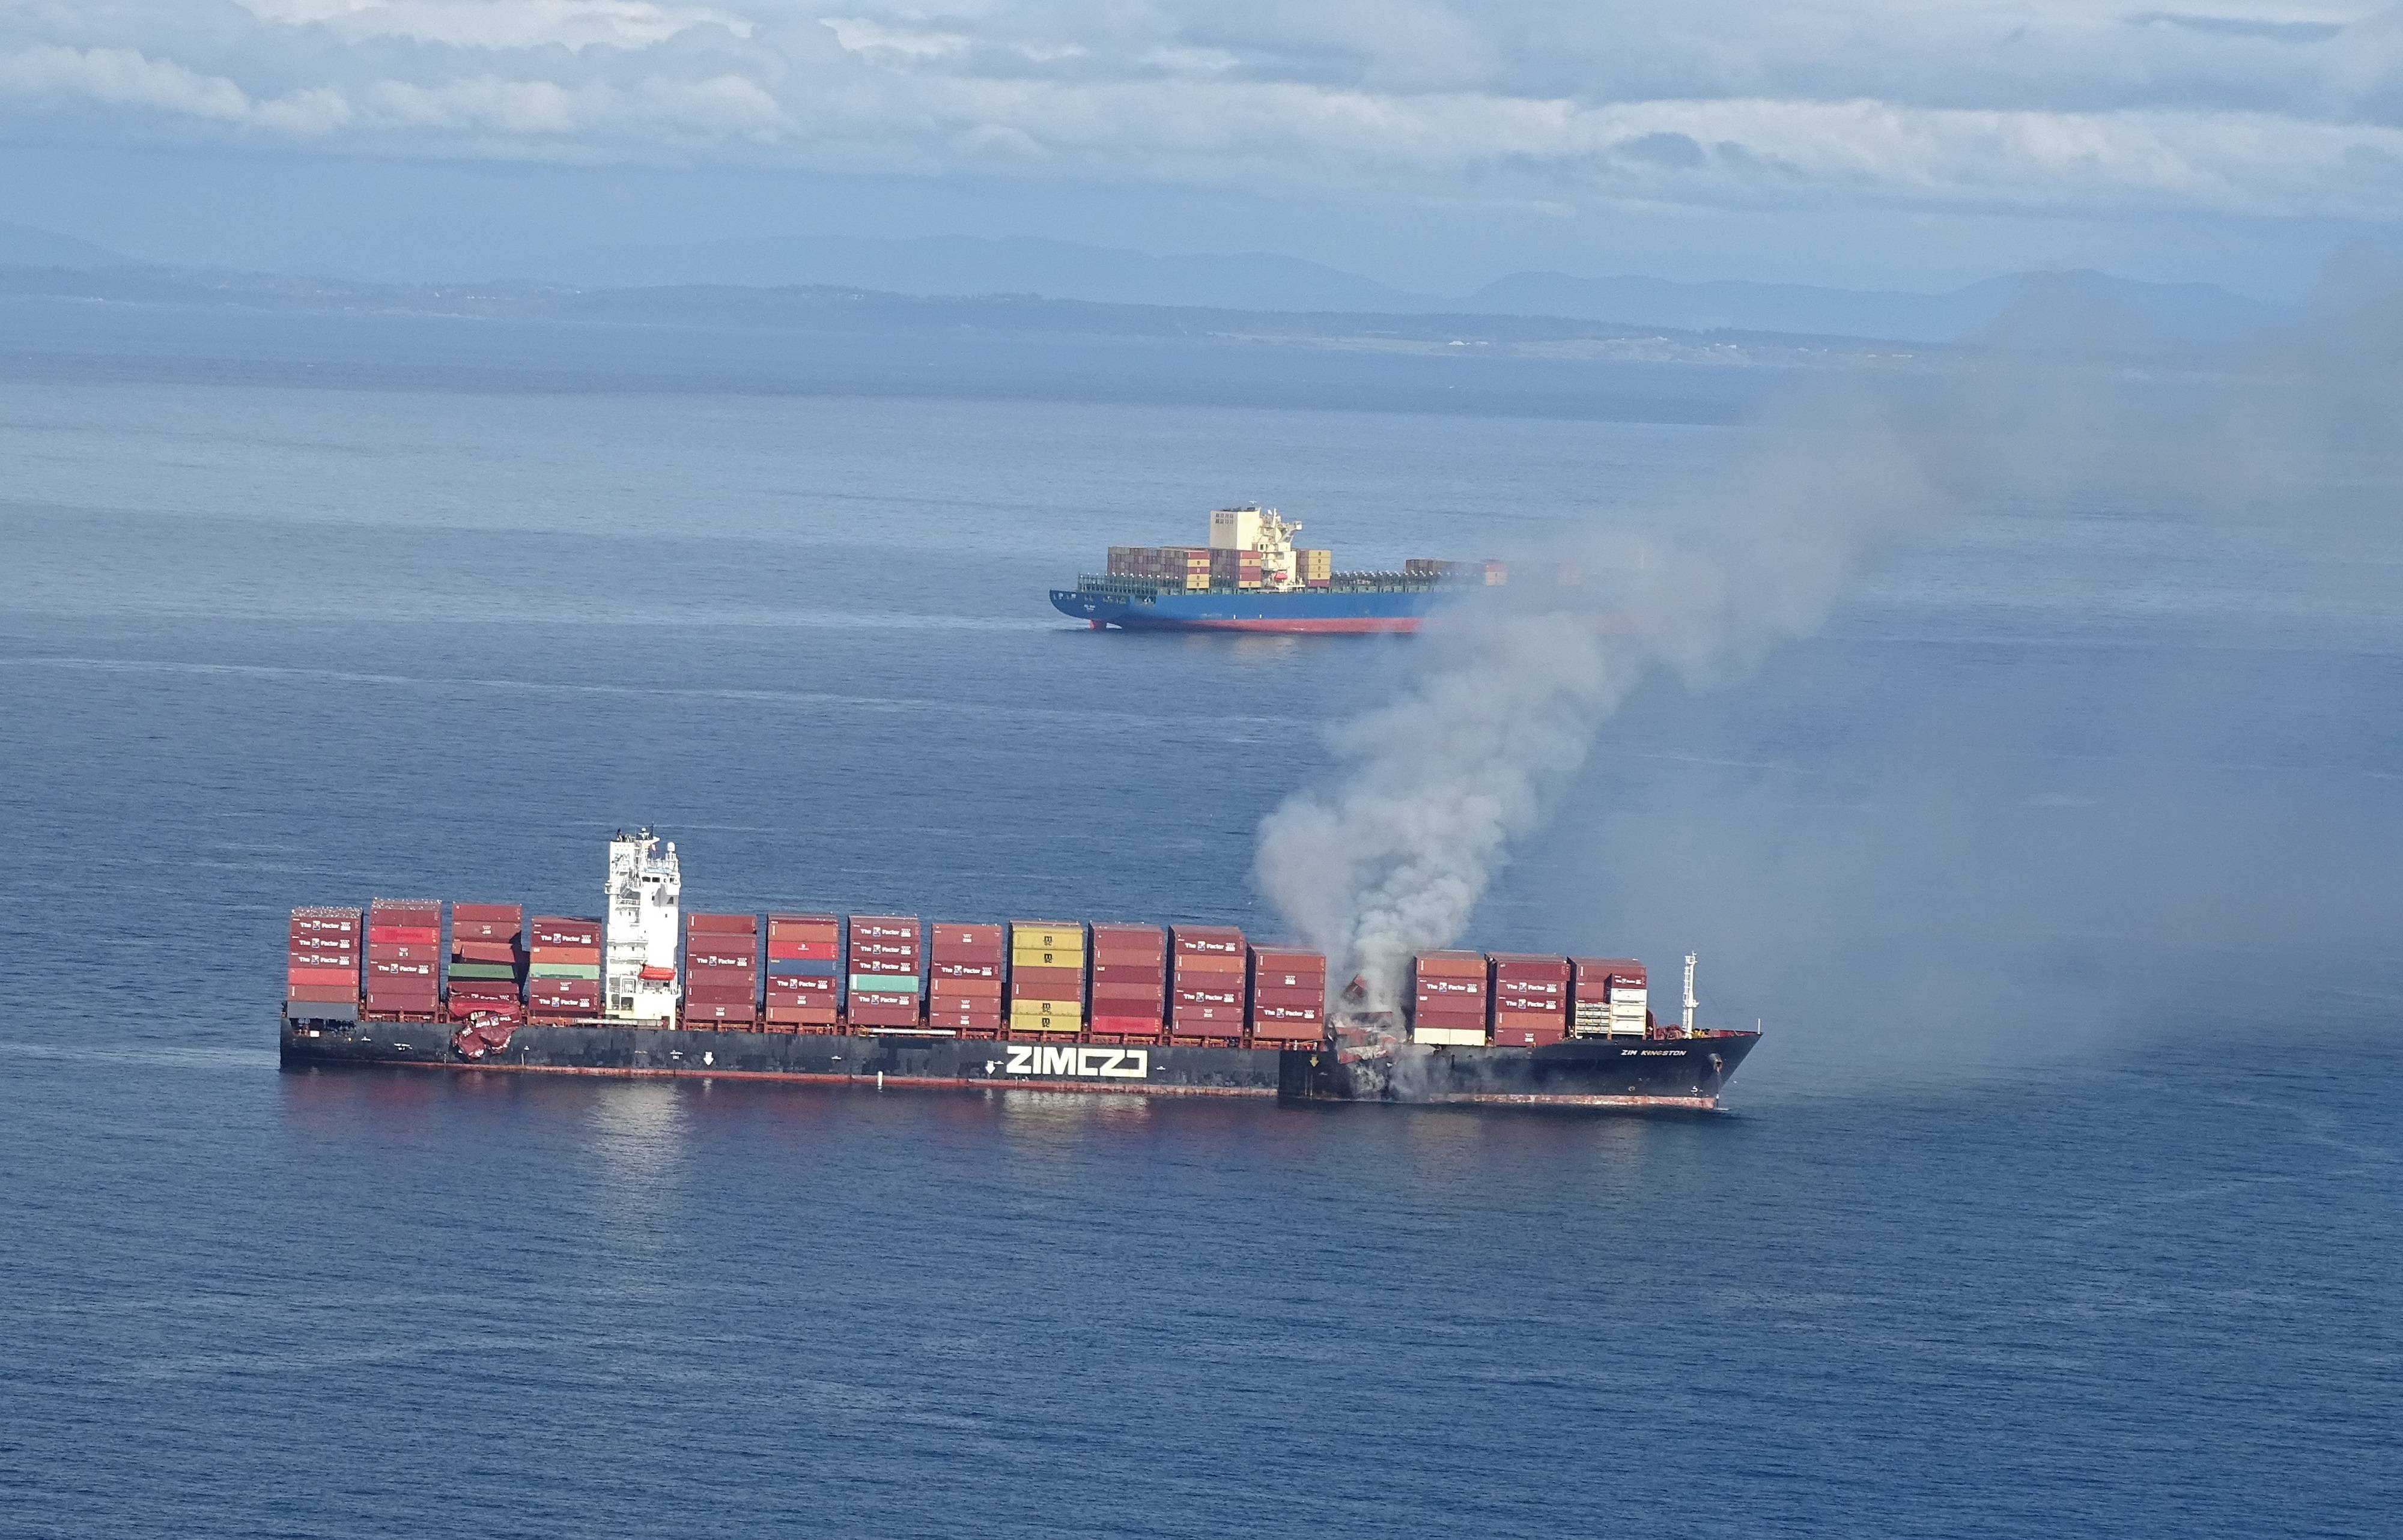 Fire breaks out on cargo ship off British Columbia